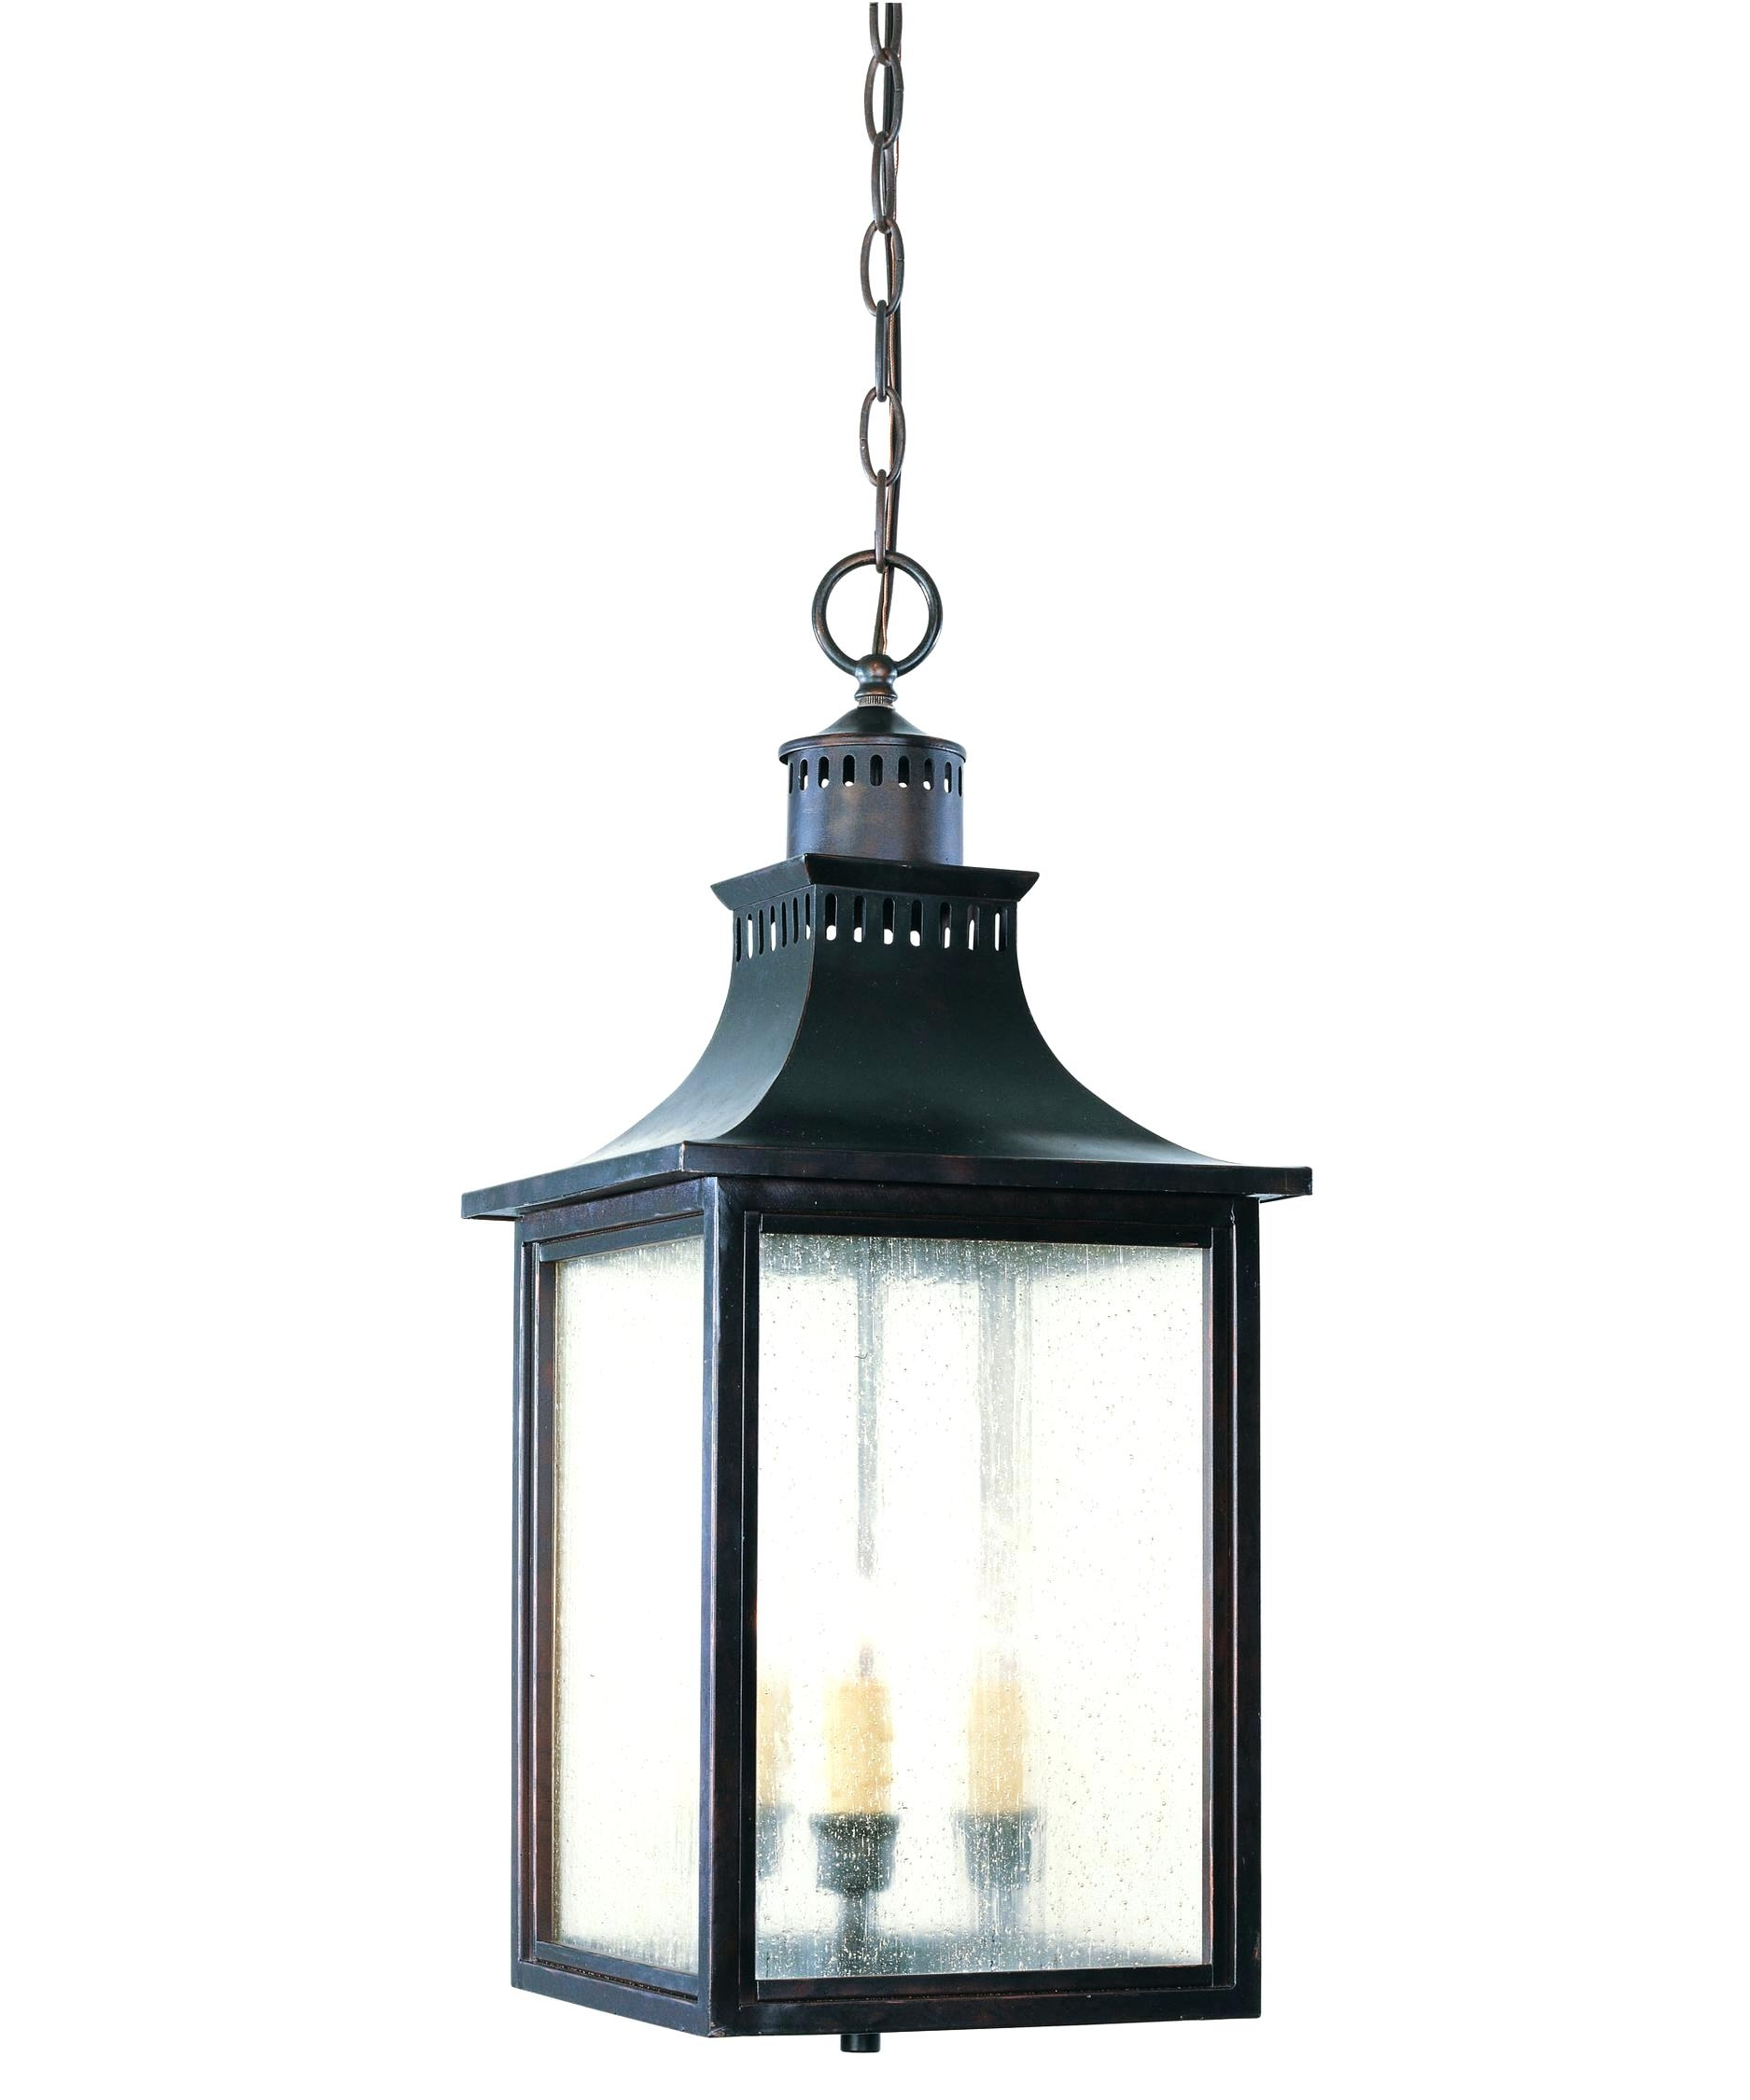 Outdoor Hanging Lanterns With Pir For Fashionable Outdoor Lantern Lights Hanging String Australia Uk With Pir (View 13 of 20)